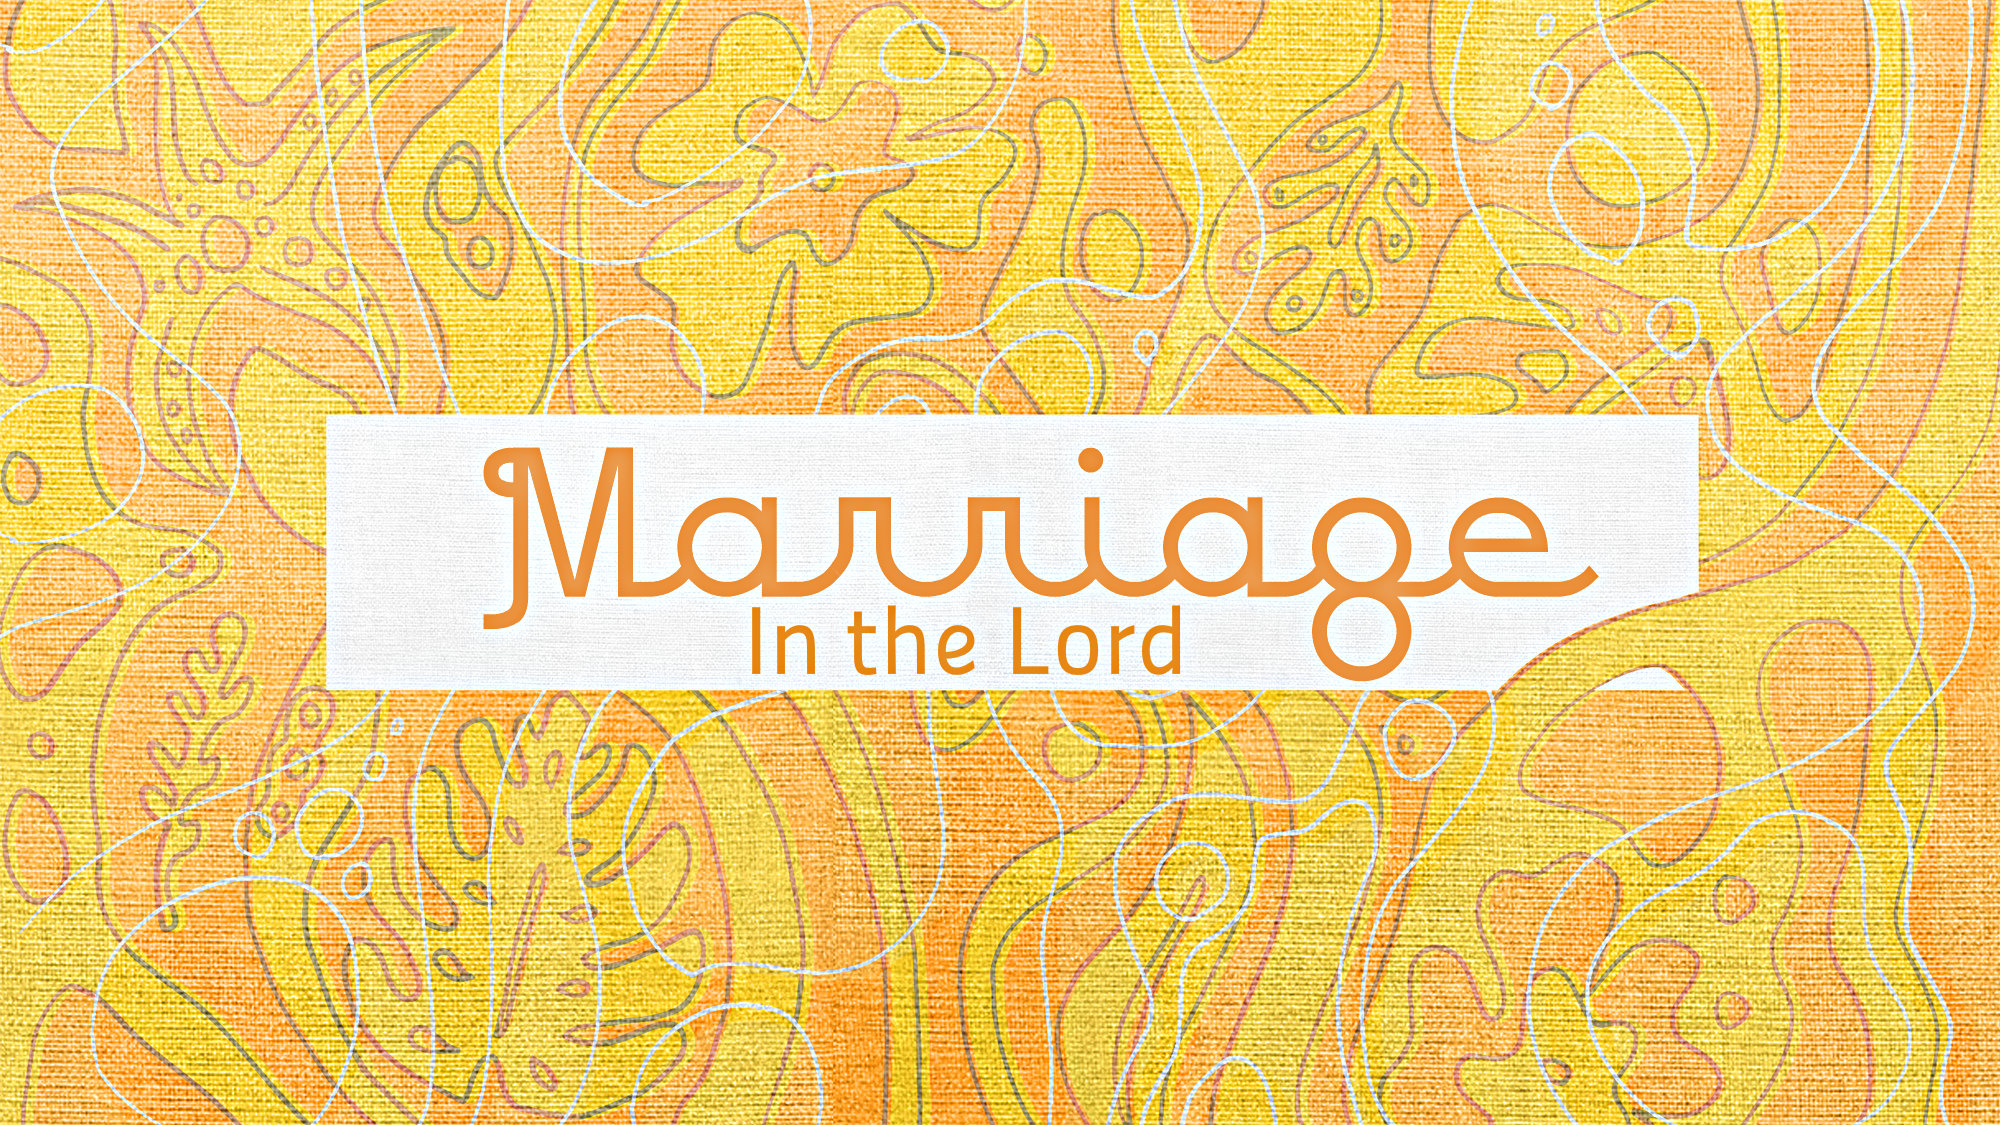 Marriage in the Lord